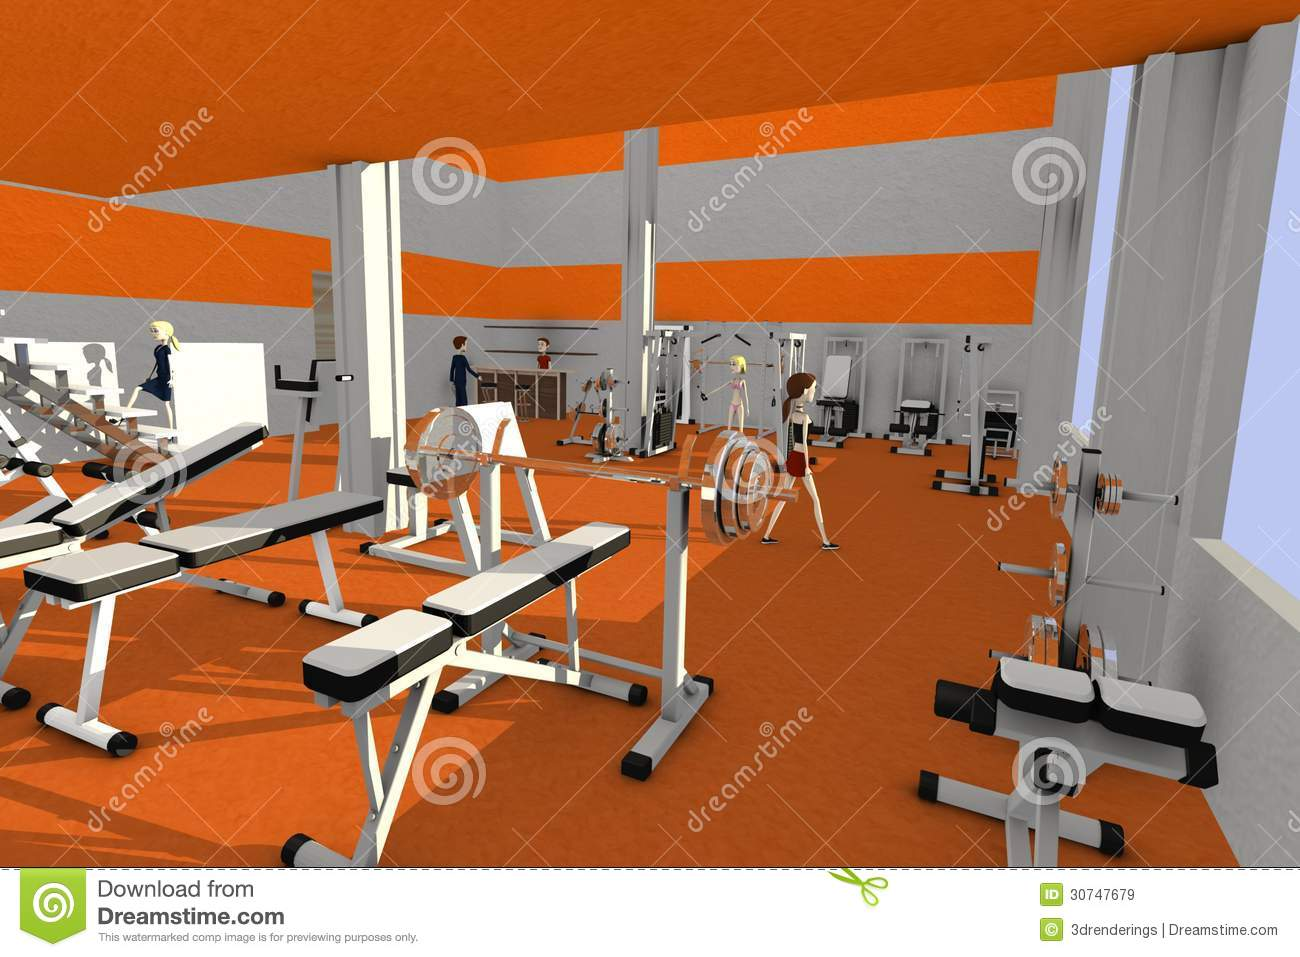 Cartoon characters in gym stock illustration